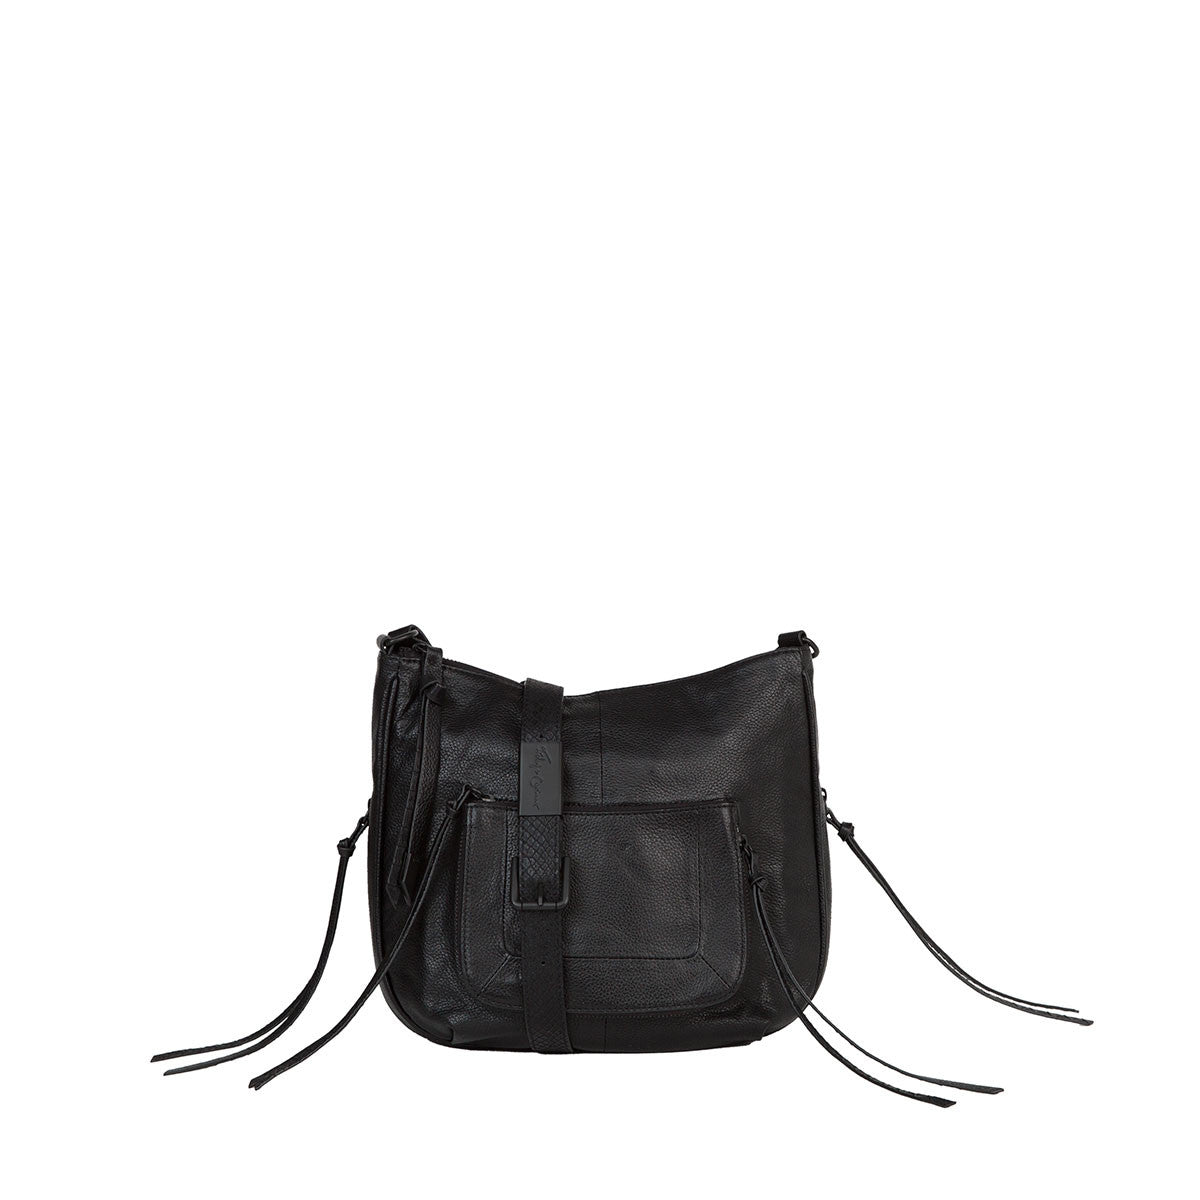 TONYA LARGE CROSSBODY IN BLACK